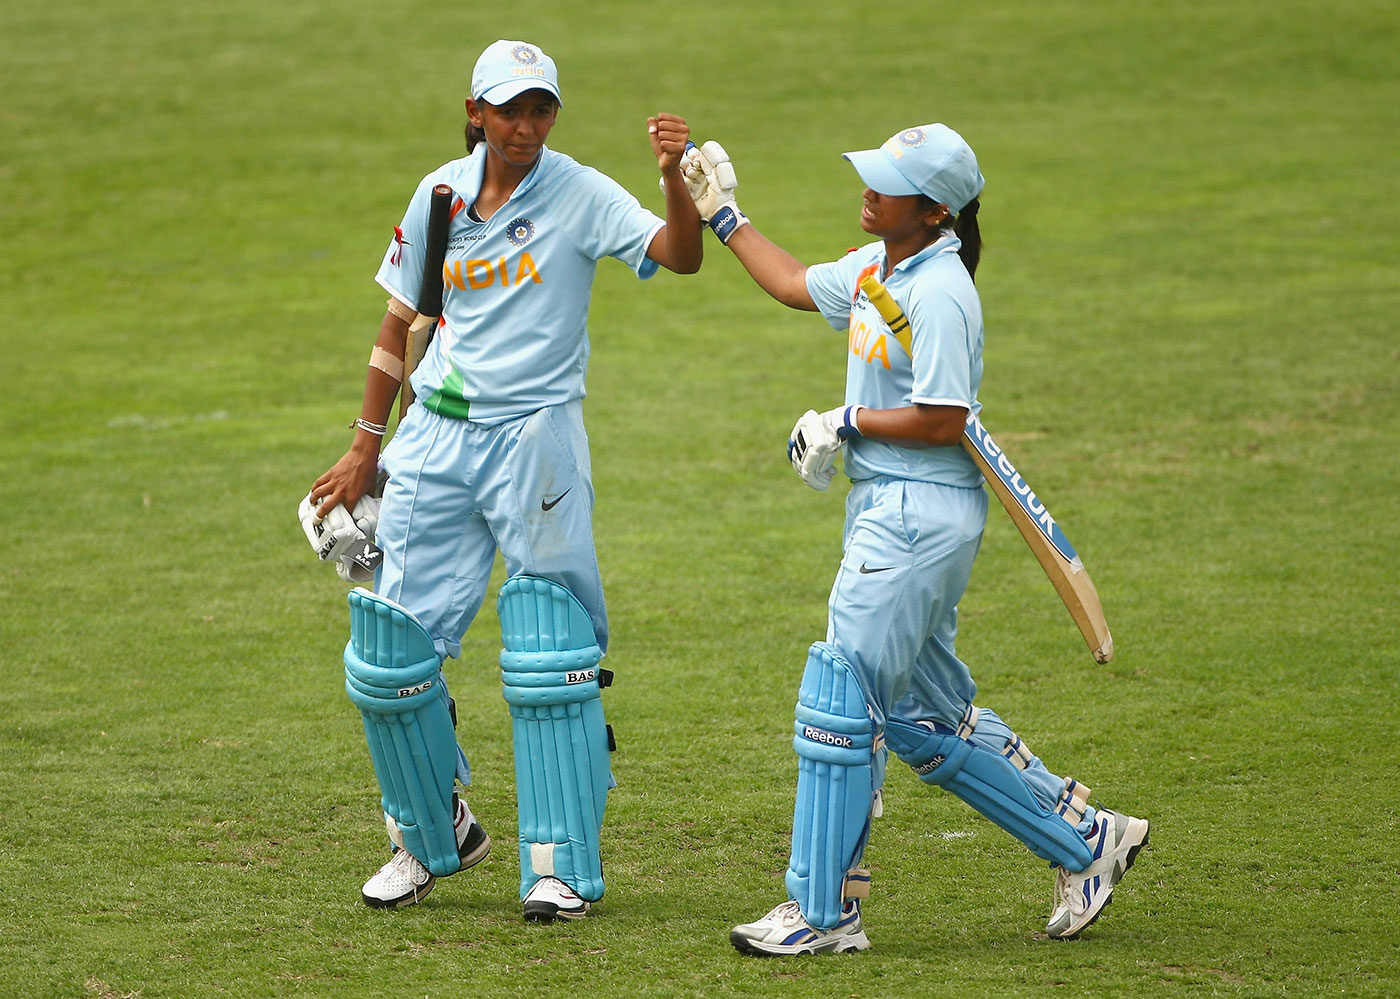 Harmanpreet and Amita Sharma (right) walk off the ground after sealing the 2009 World Cup game against Australia